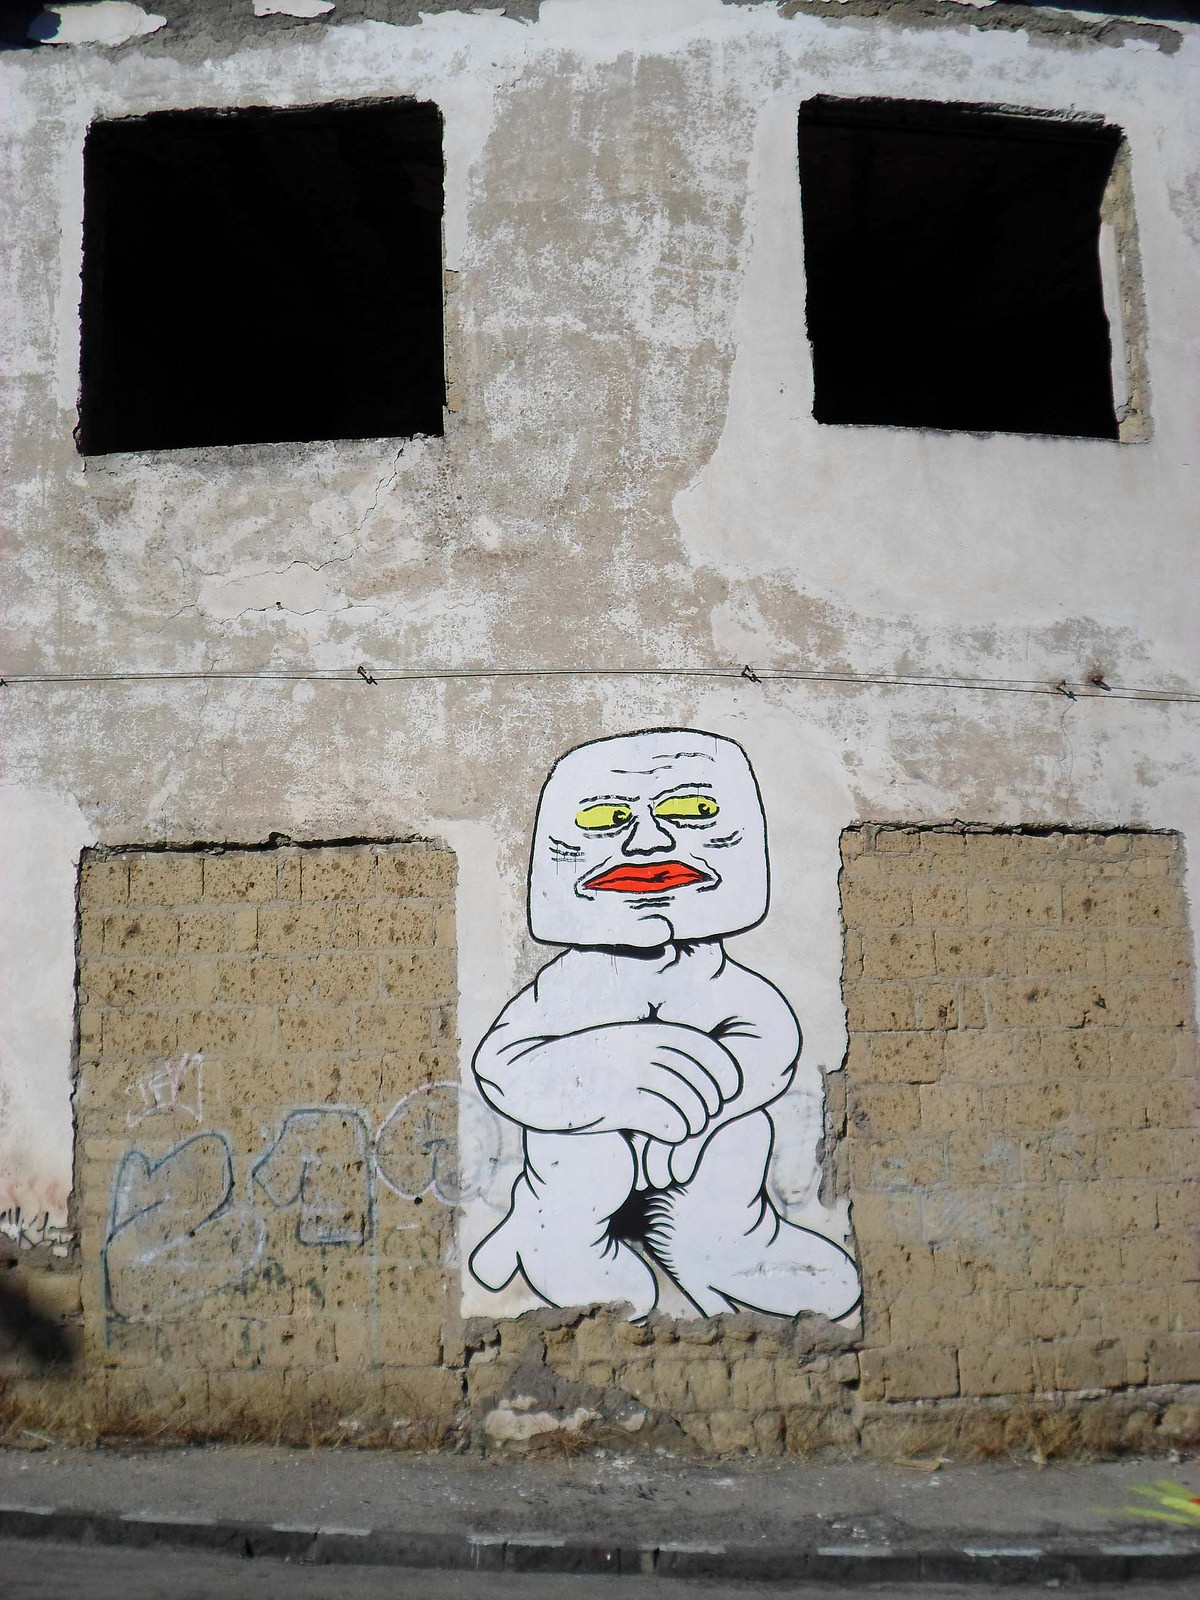 diego-miedo-new-murals-in-napoli-and-ercolano-02